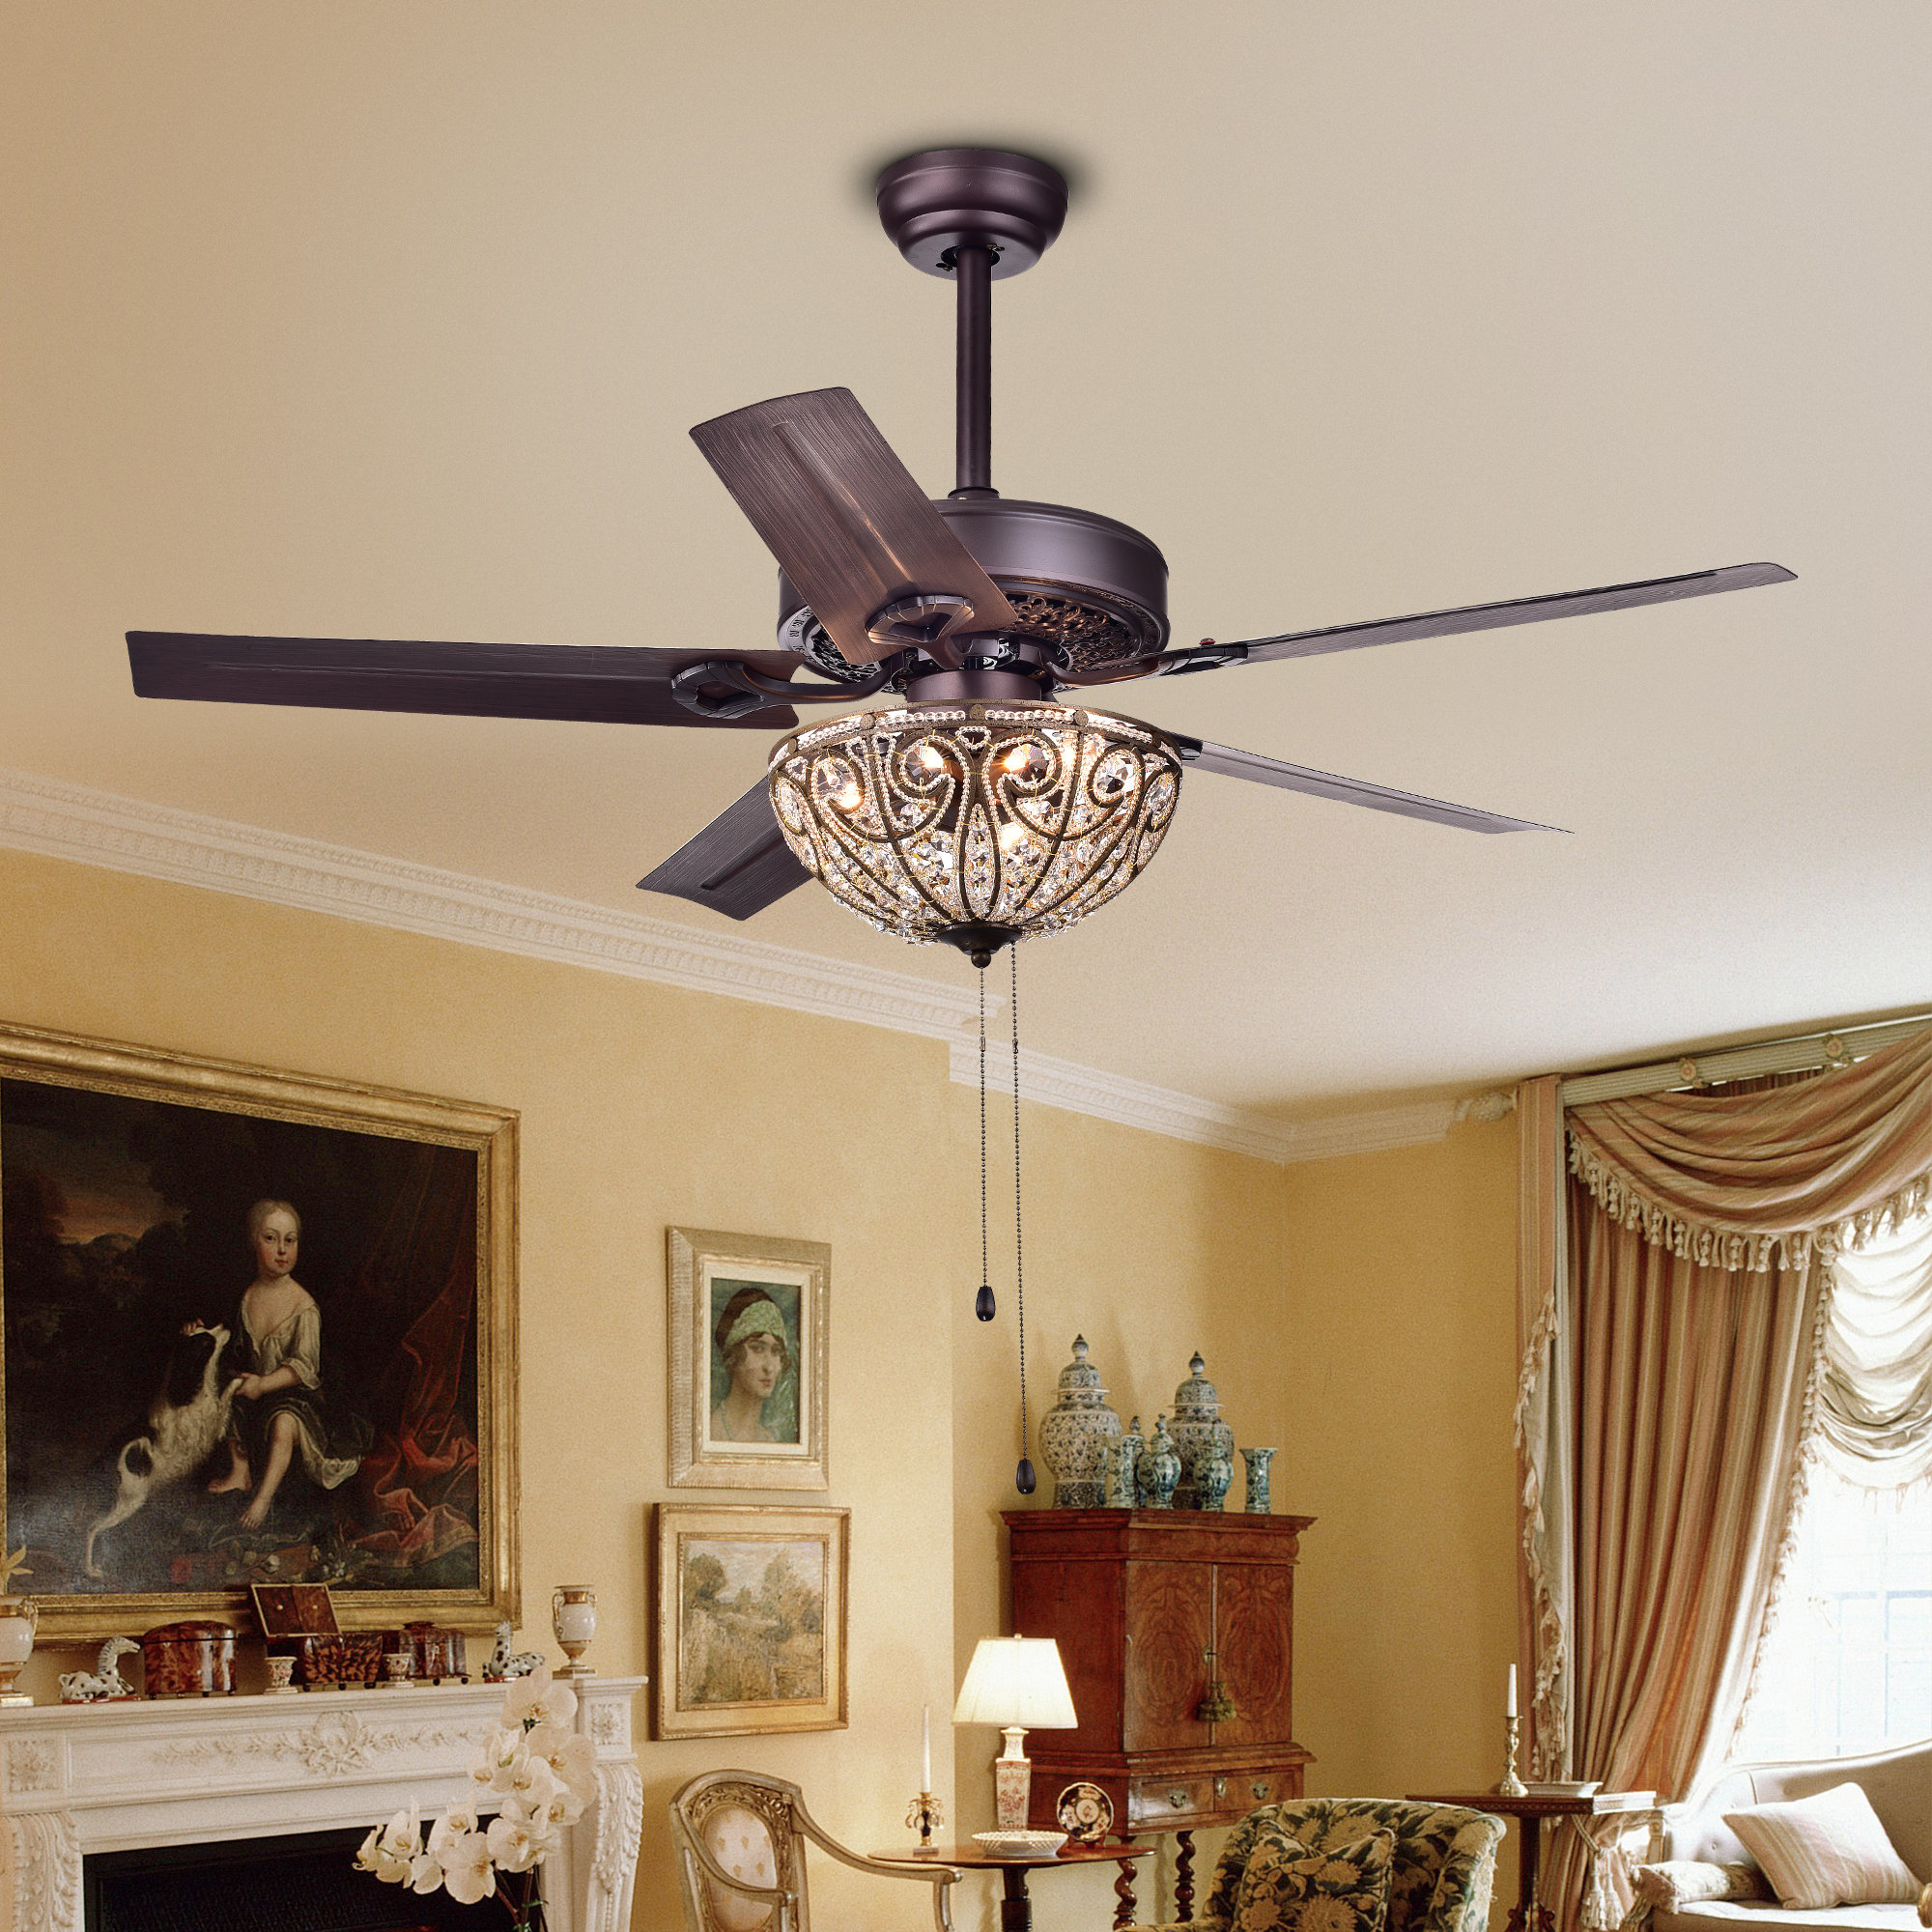 "Widely Used Norah 5 Blade Ceiling Fans For 48"" 5 Blade Ceiling Fan, Light Kit Included (View 19 of 20)"